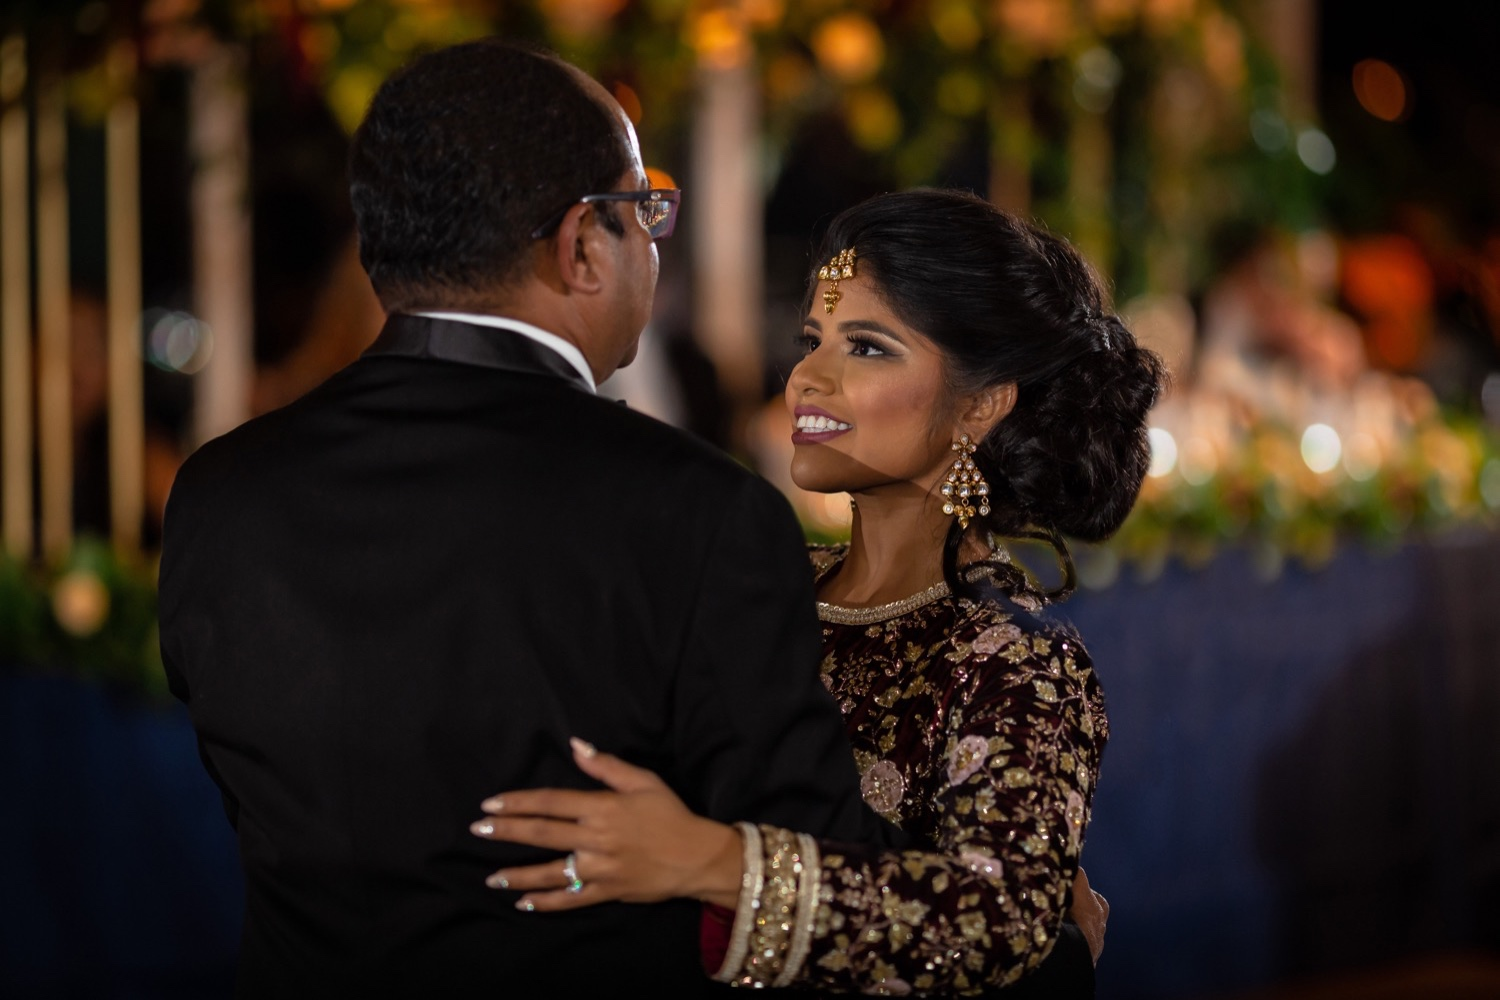 A bride dancing with her father during a wedding reception at the Tappan Hill Mansion.